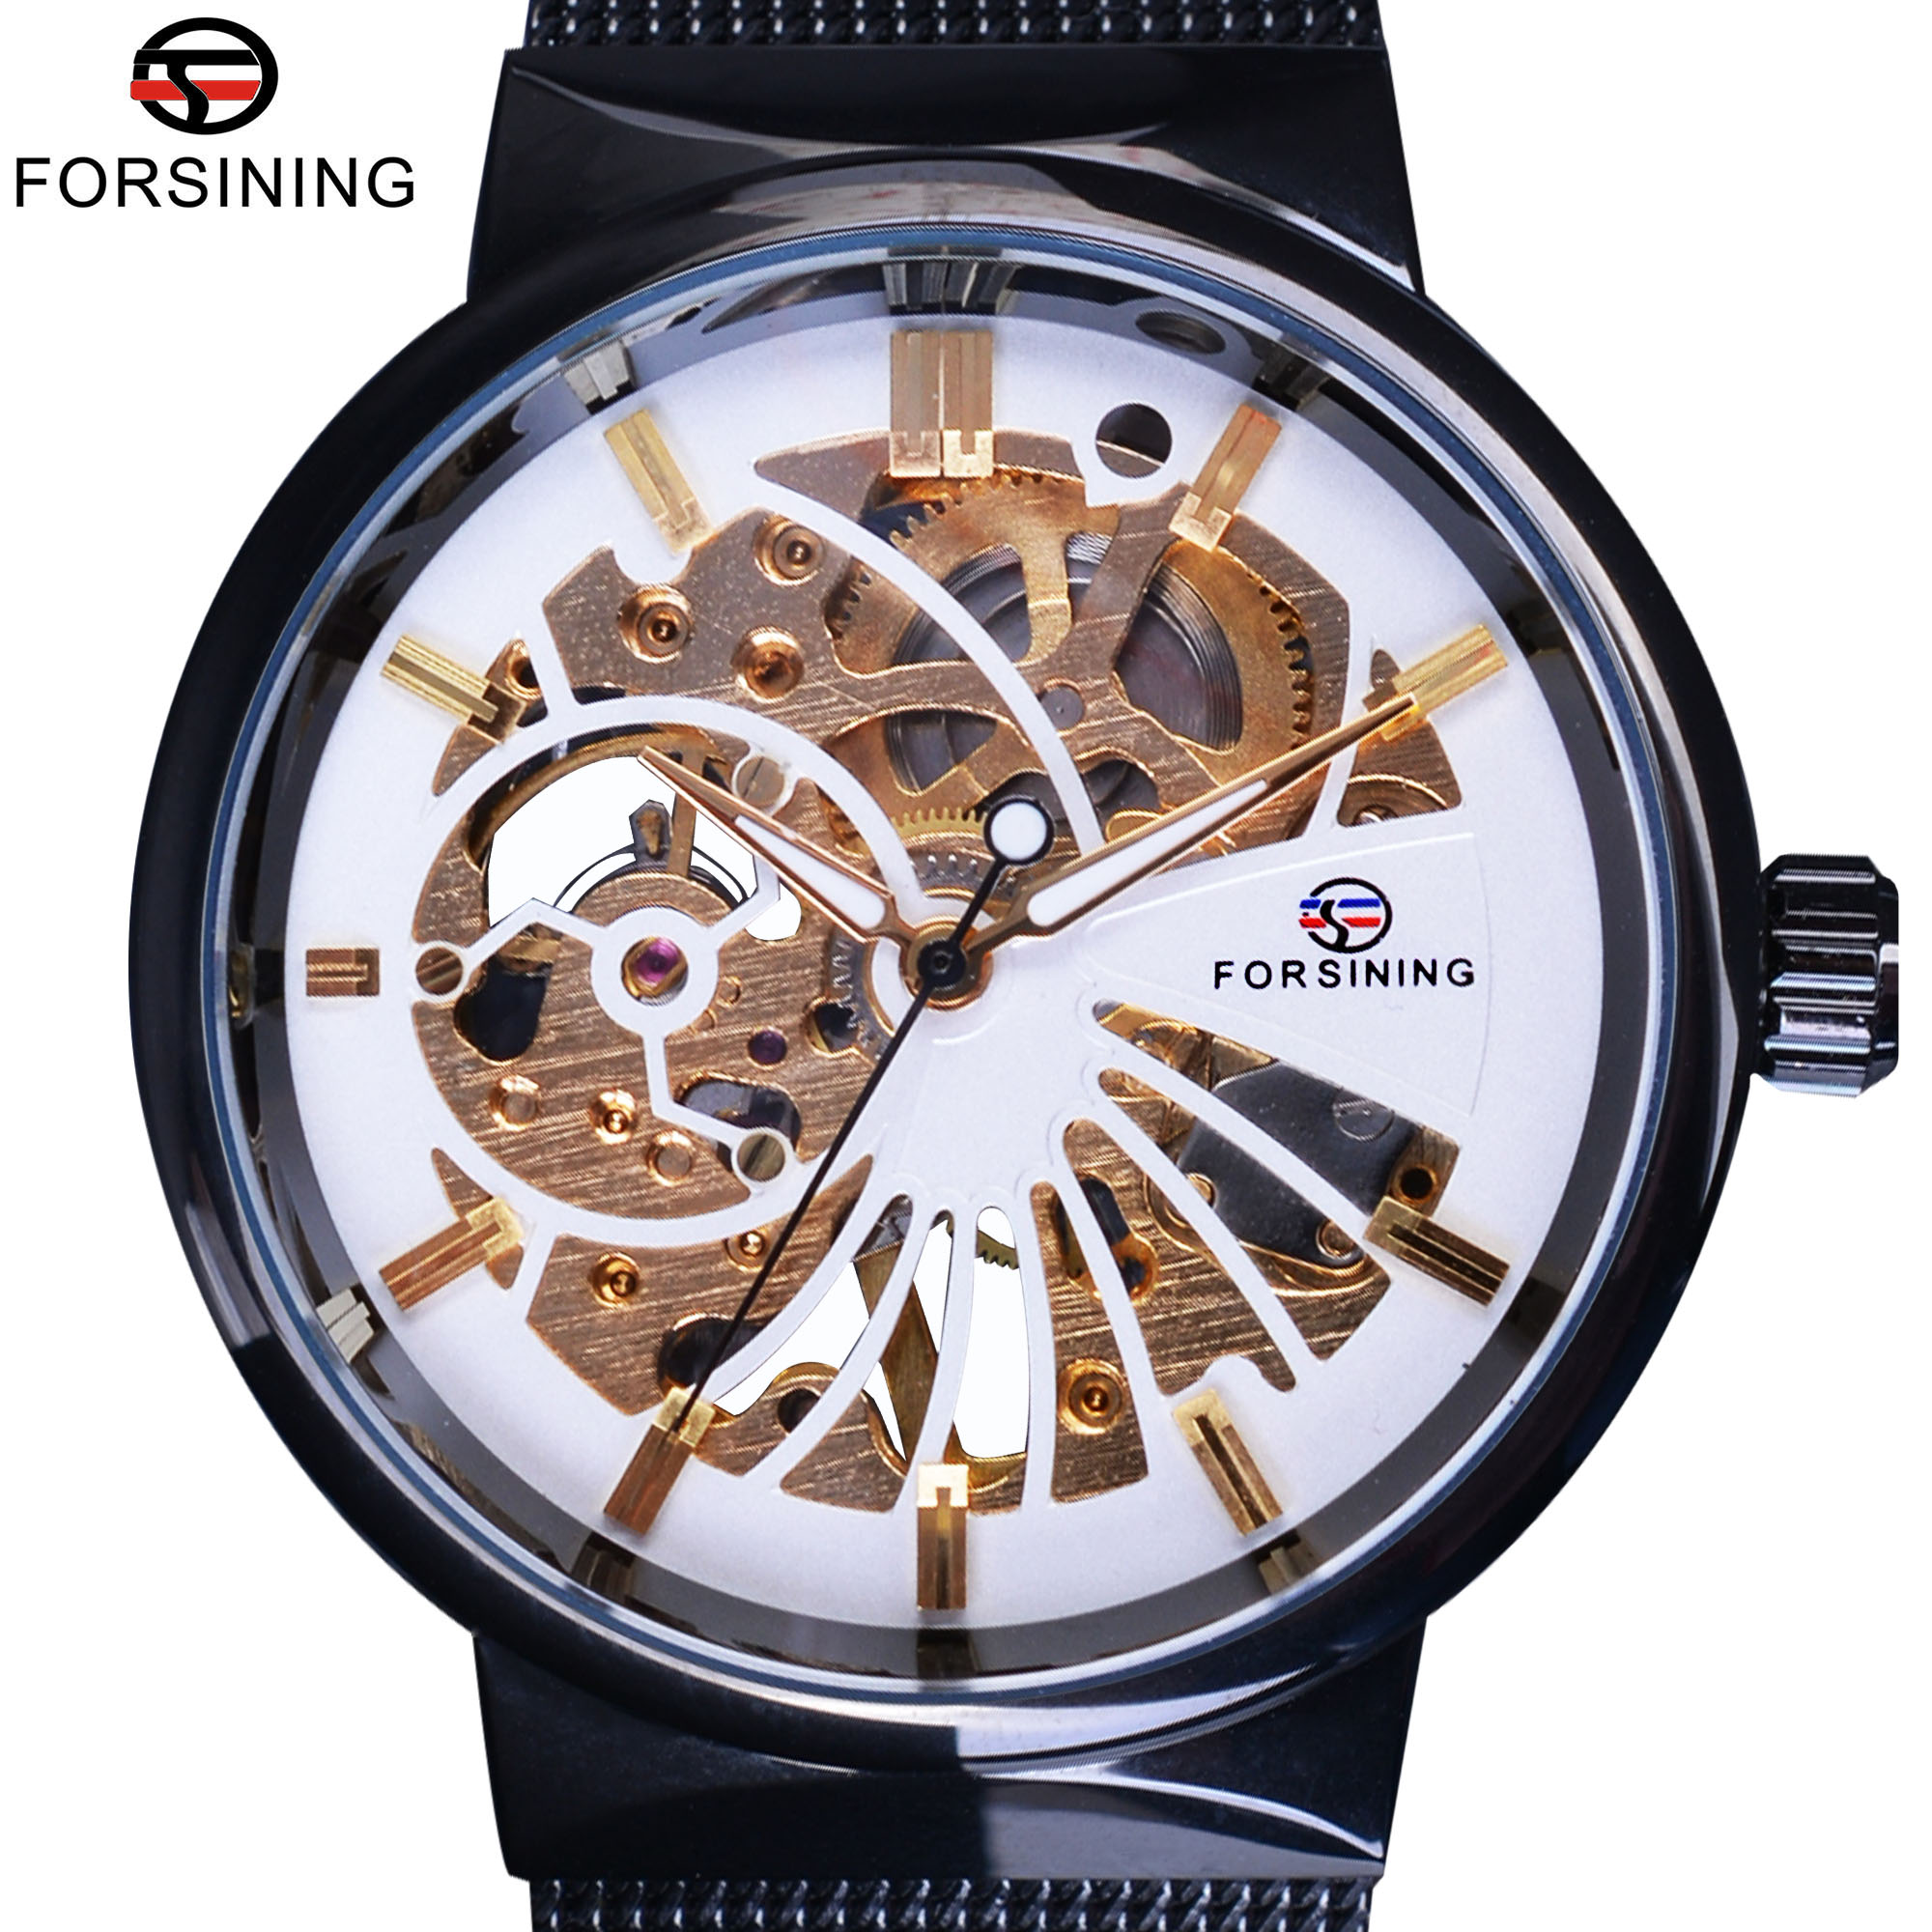 Watches Hearty Forsining Fashion Dress Watch Men Auto Mechanical Watches White Dial Ultra Thin Mesh Strap Minimalist Wristwatch Montre Homme Men's Watches